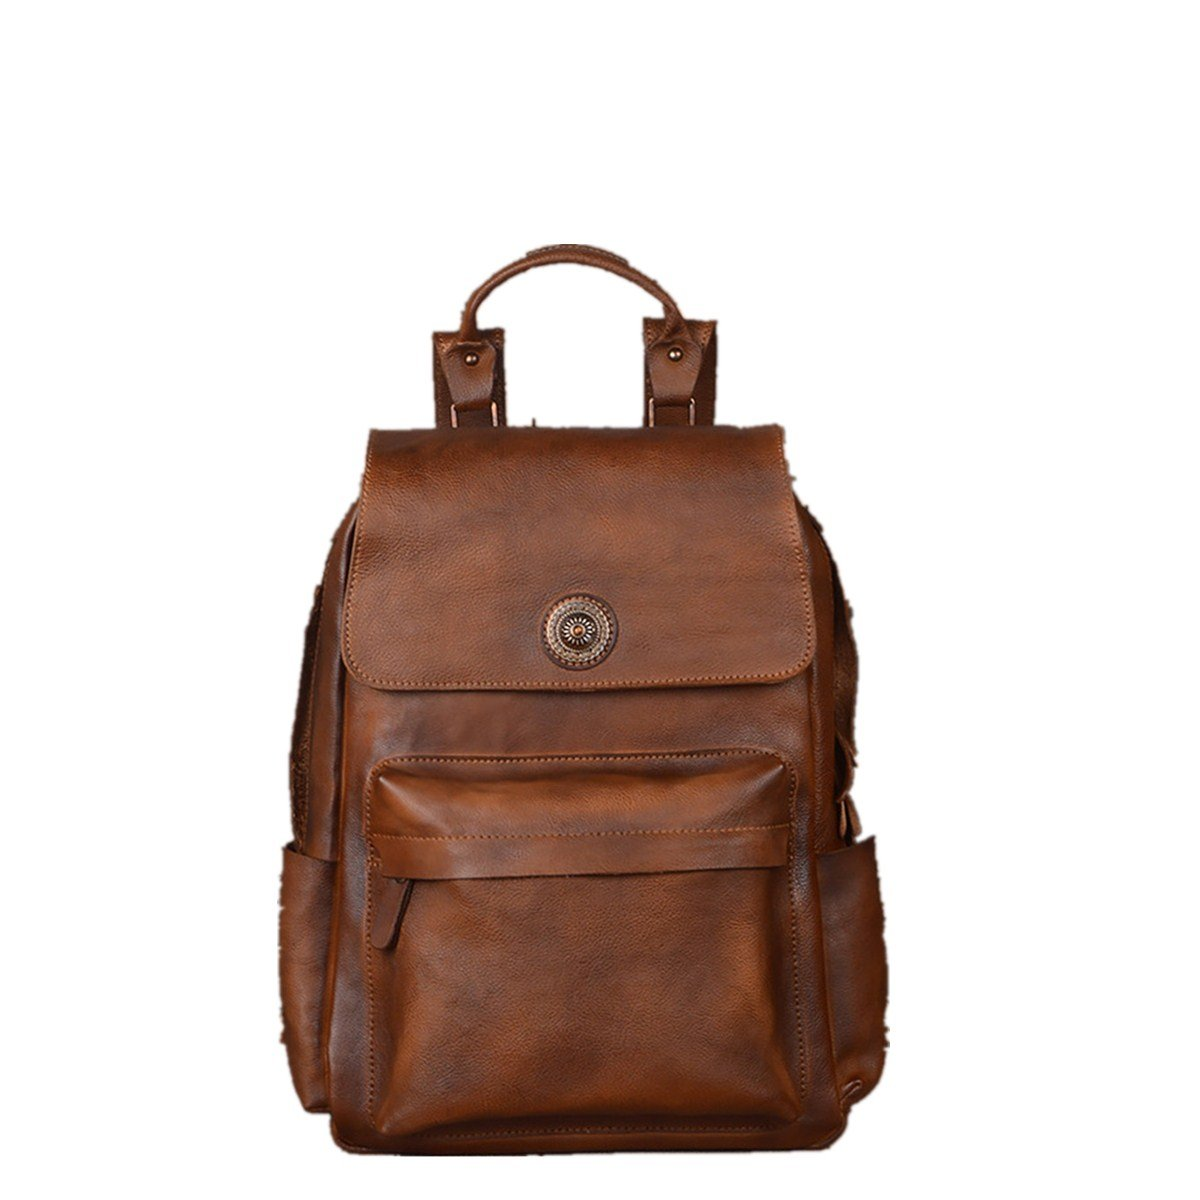 OURBAG Men Genuine Leather Travel Shoulder Bag Vintage School Bag Business Backpack Retro Brown Medium